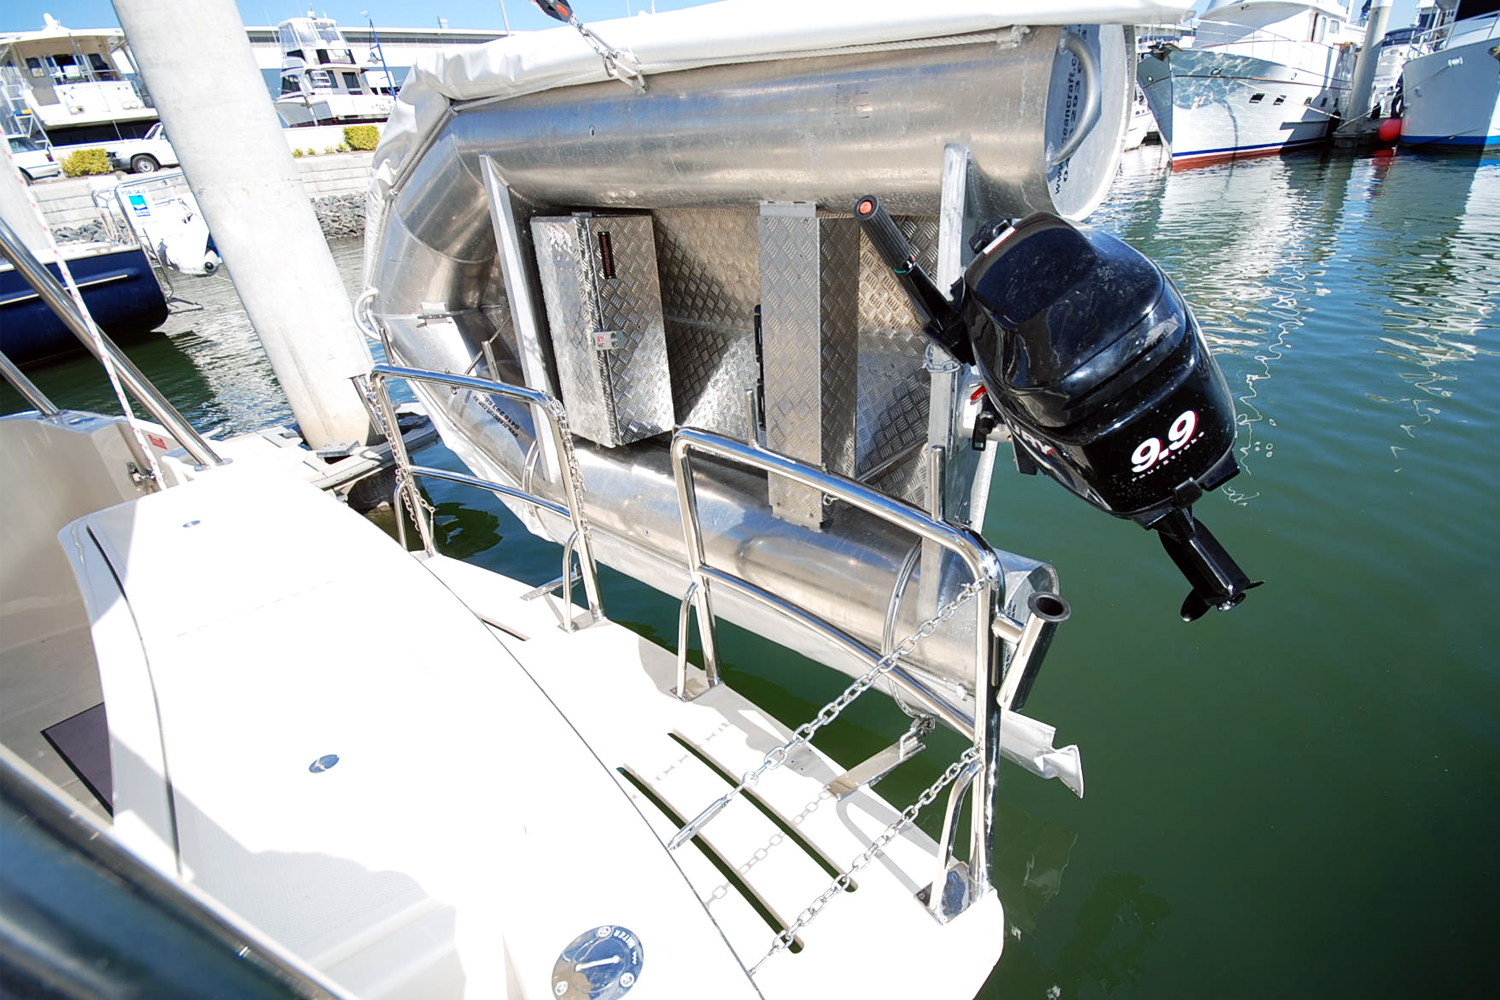 Stainless stern rail with dinghy mounts